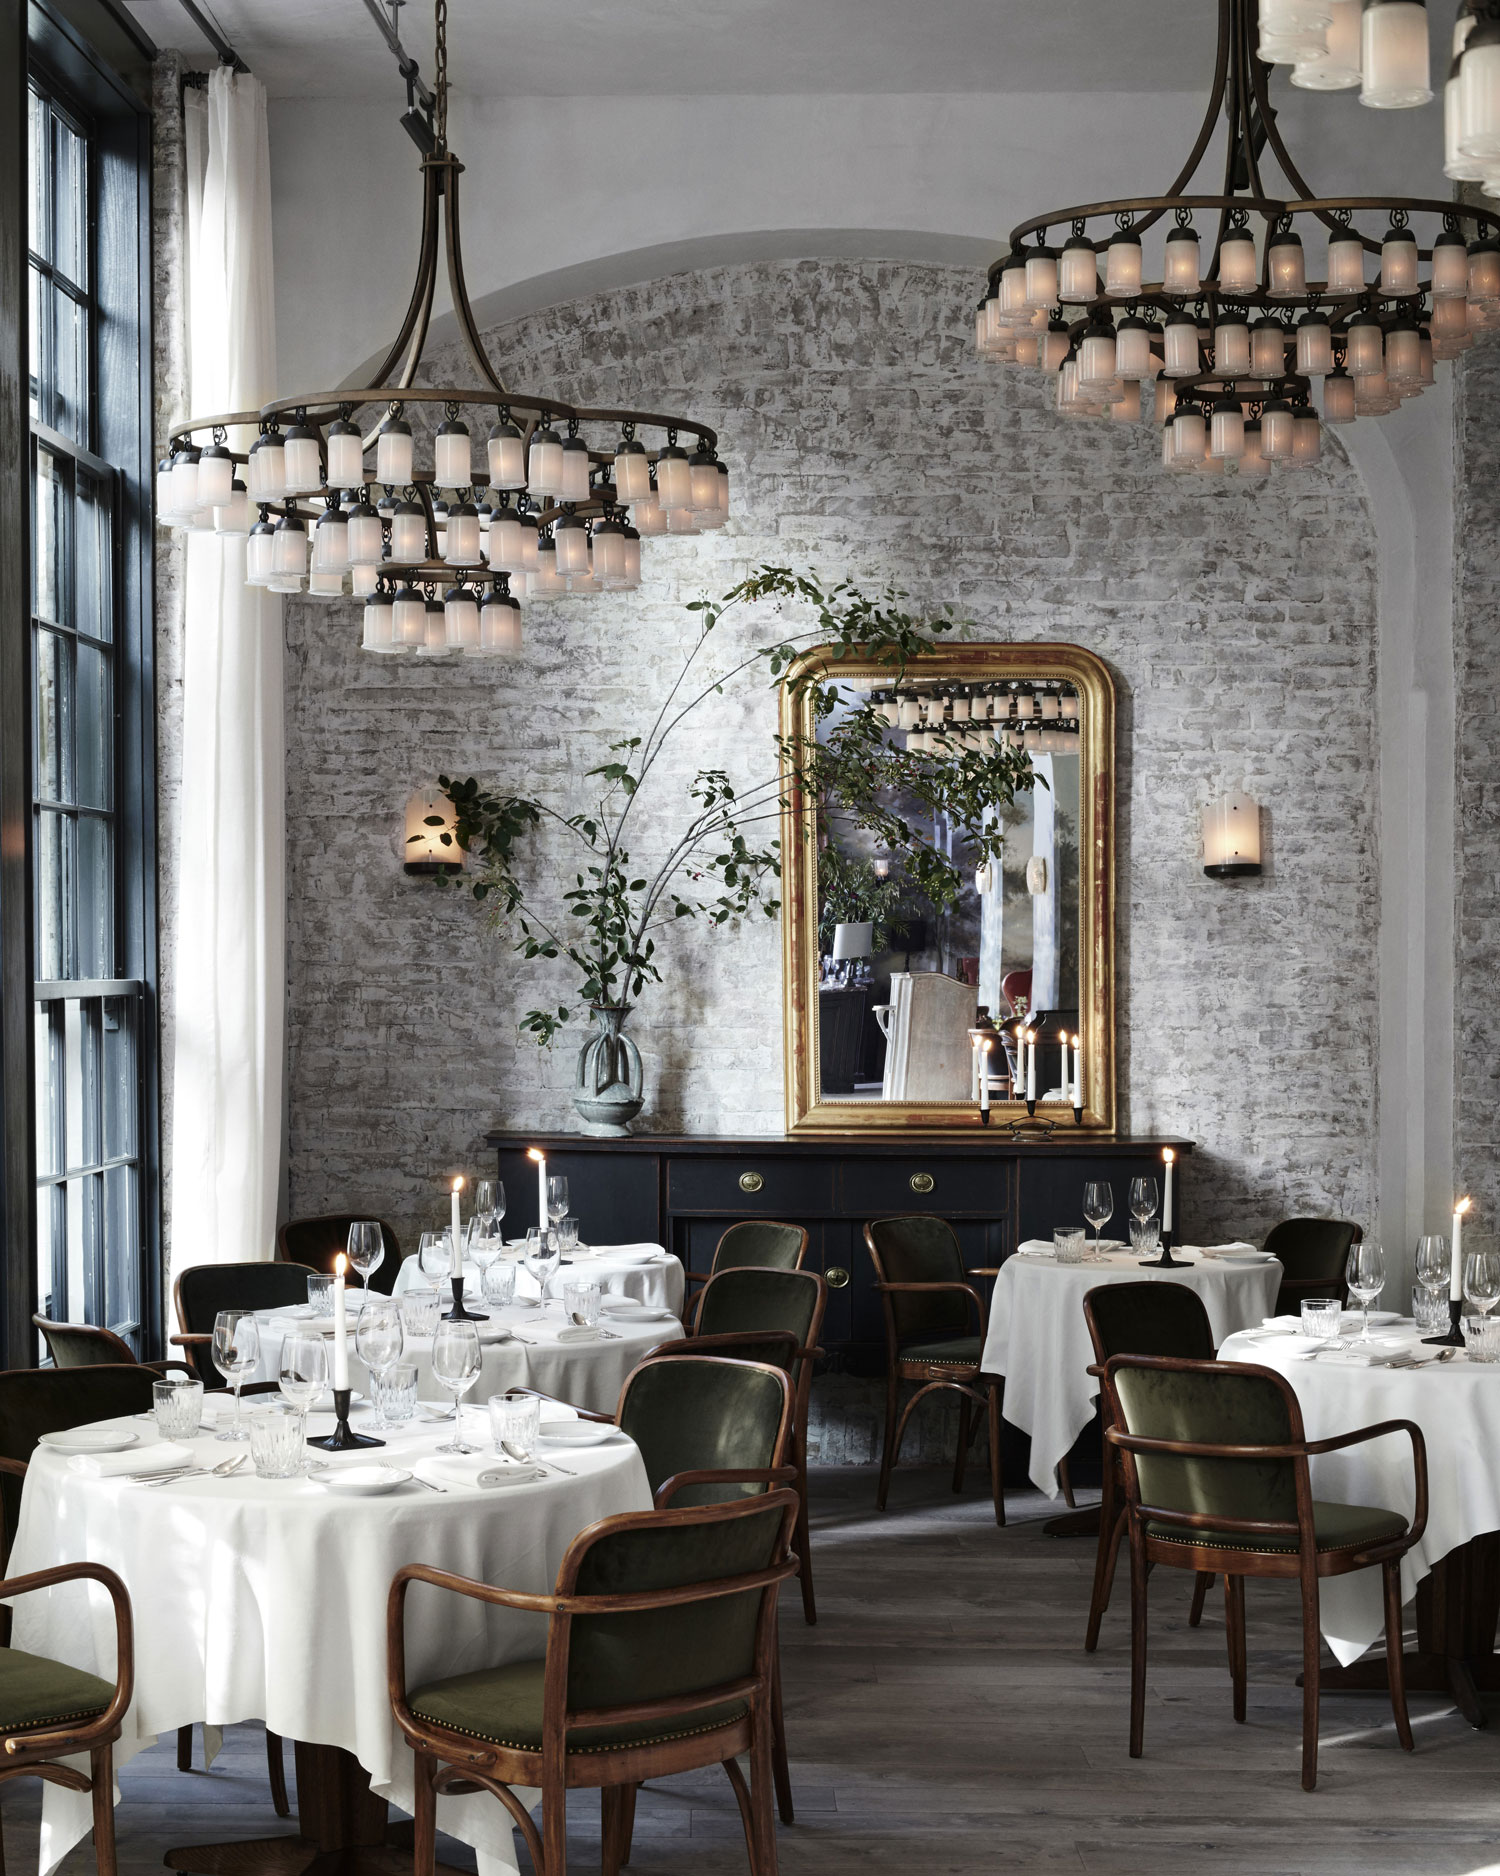 Restaurant A New York Le Coucou Restaurant In New York By Roman And Williams